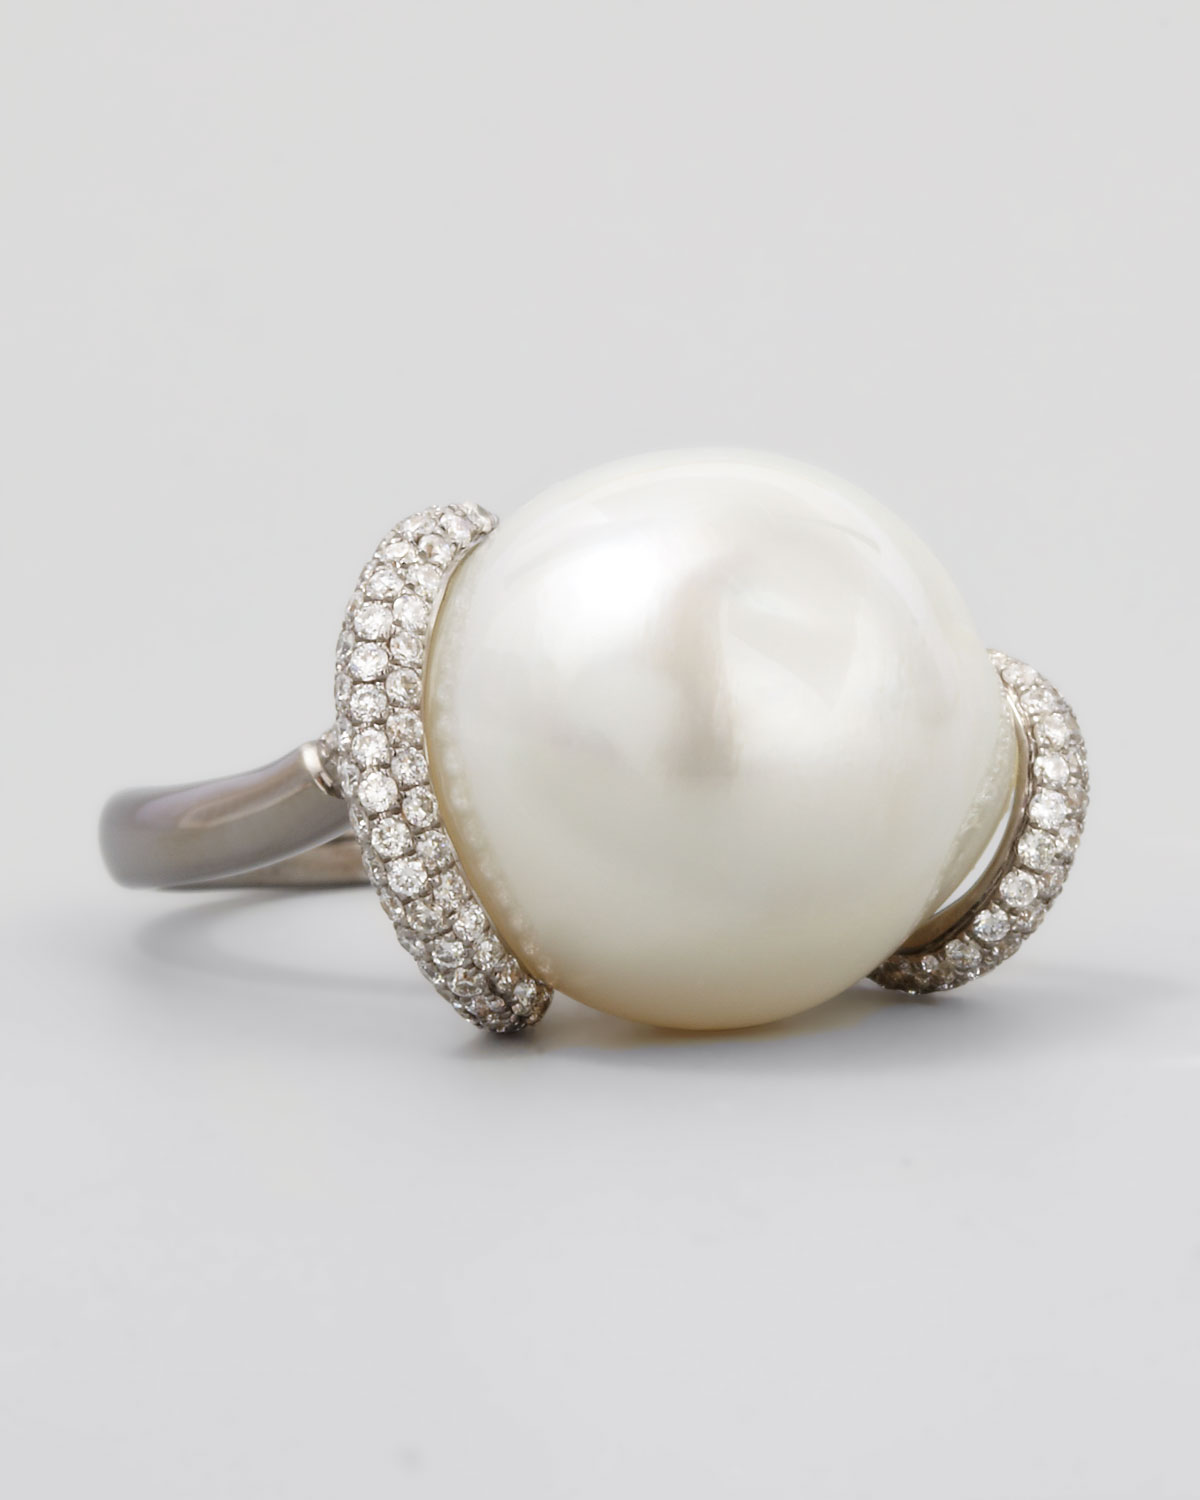 Property Brothers Apply Lyst Eli Jewels White Keshi Pearl And Diamond Ring In